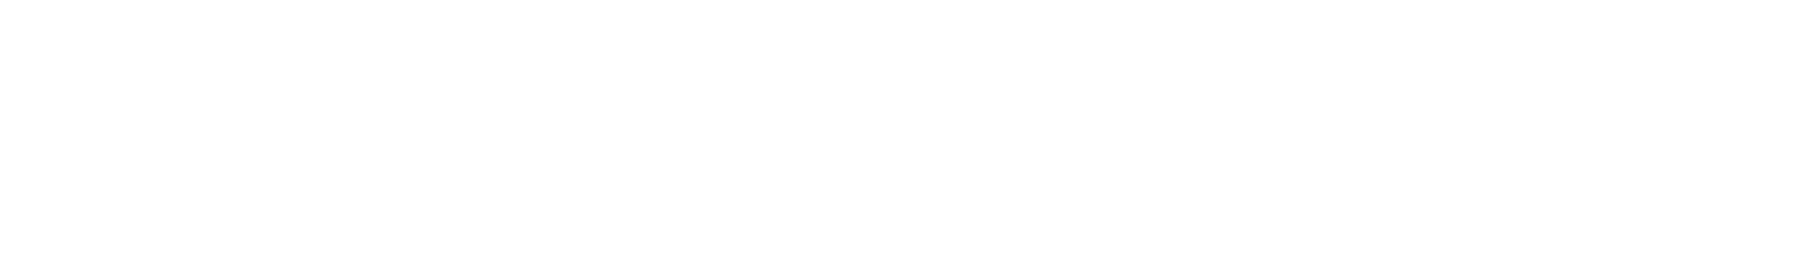 snare 19